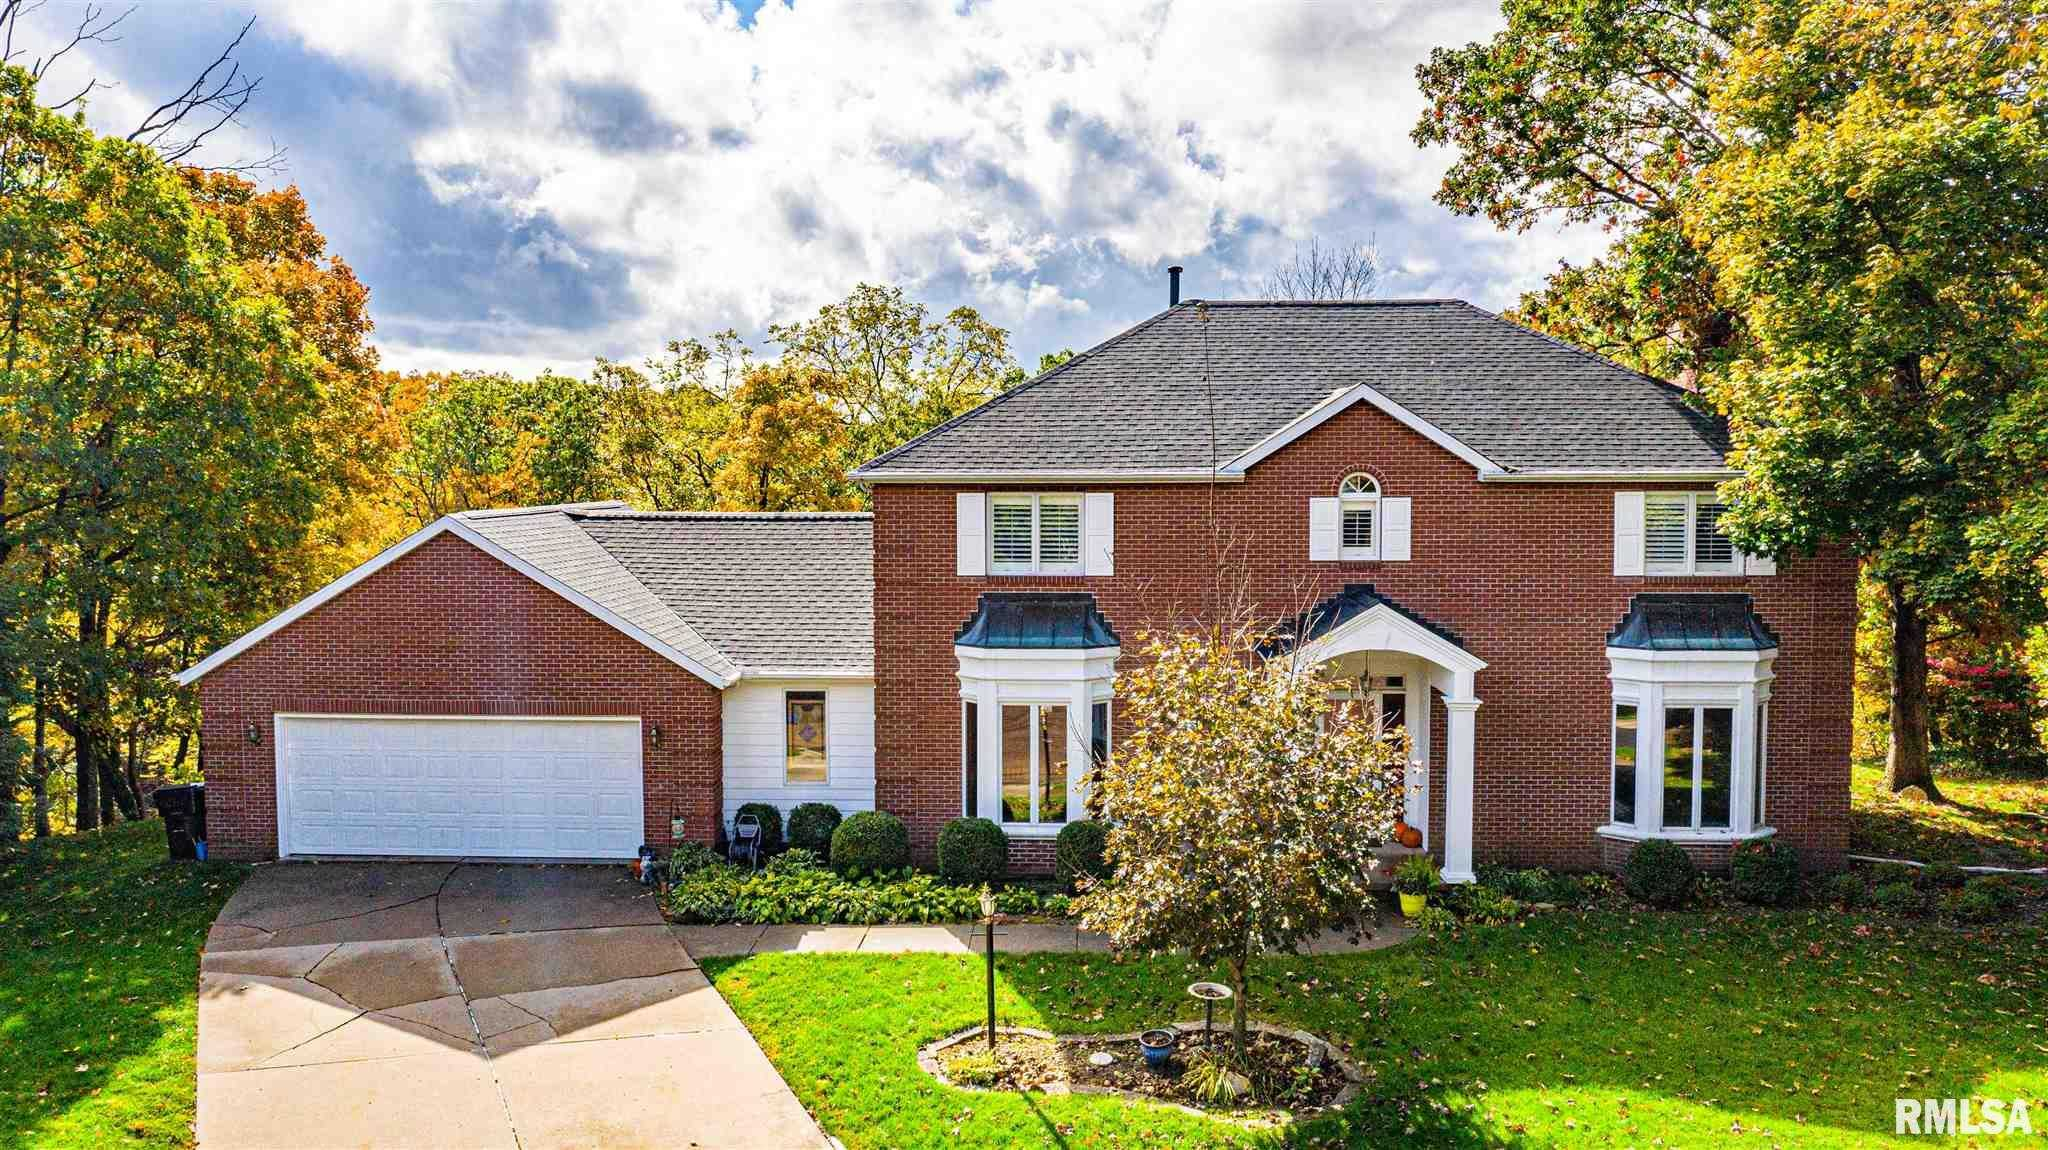 $289,900 - 4Br/3Ba -  for Sale in Mossville, Peoria